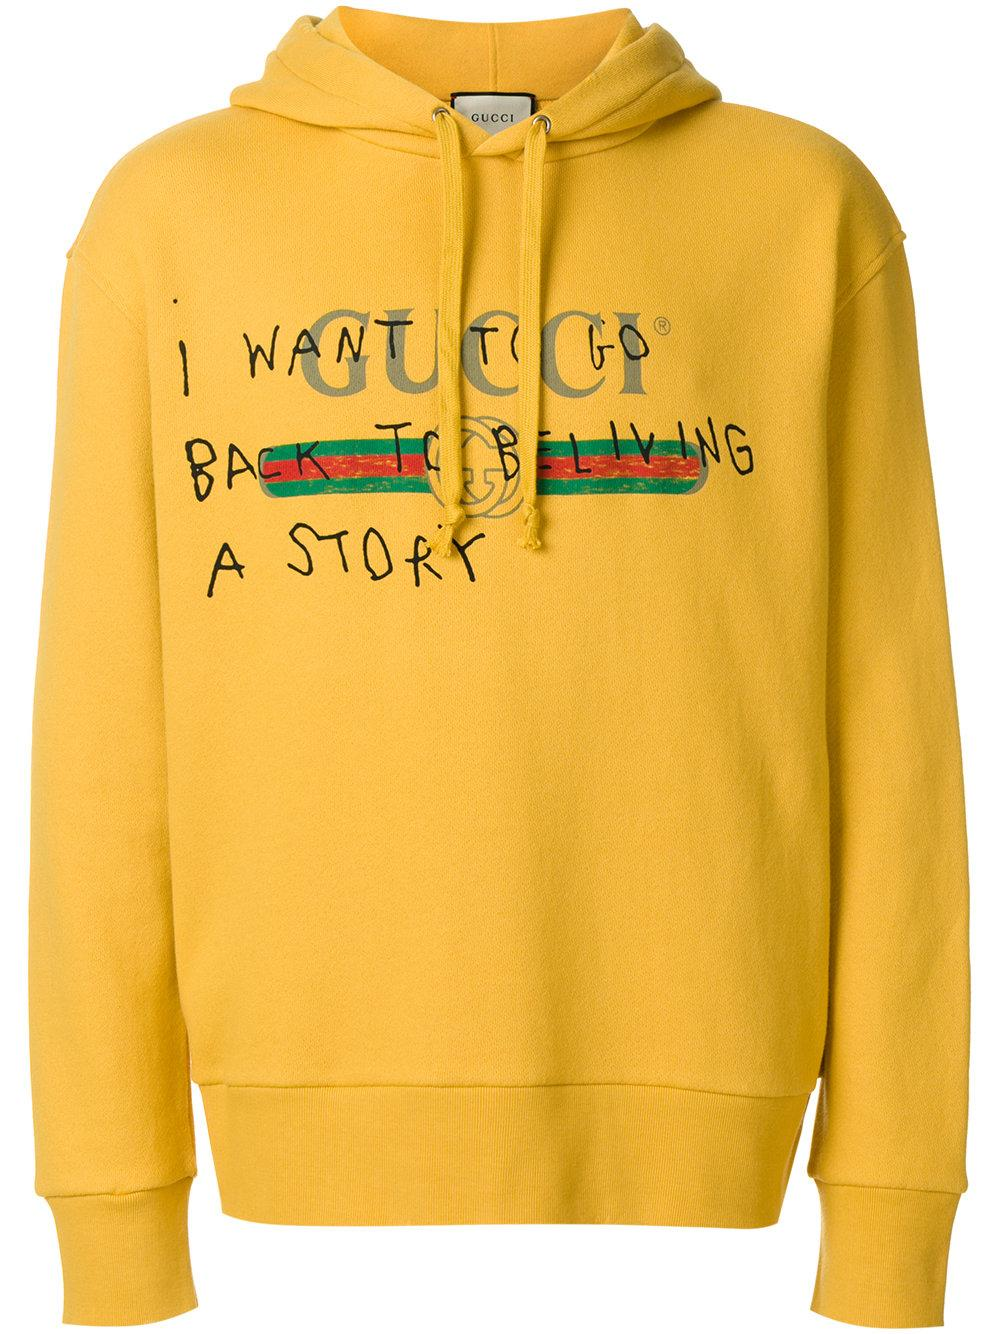 0a3b7a7d953 Lyst - Gucci Coco Capitán Logo Hoodie in Yellow for Men